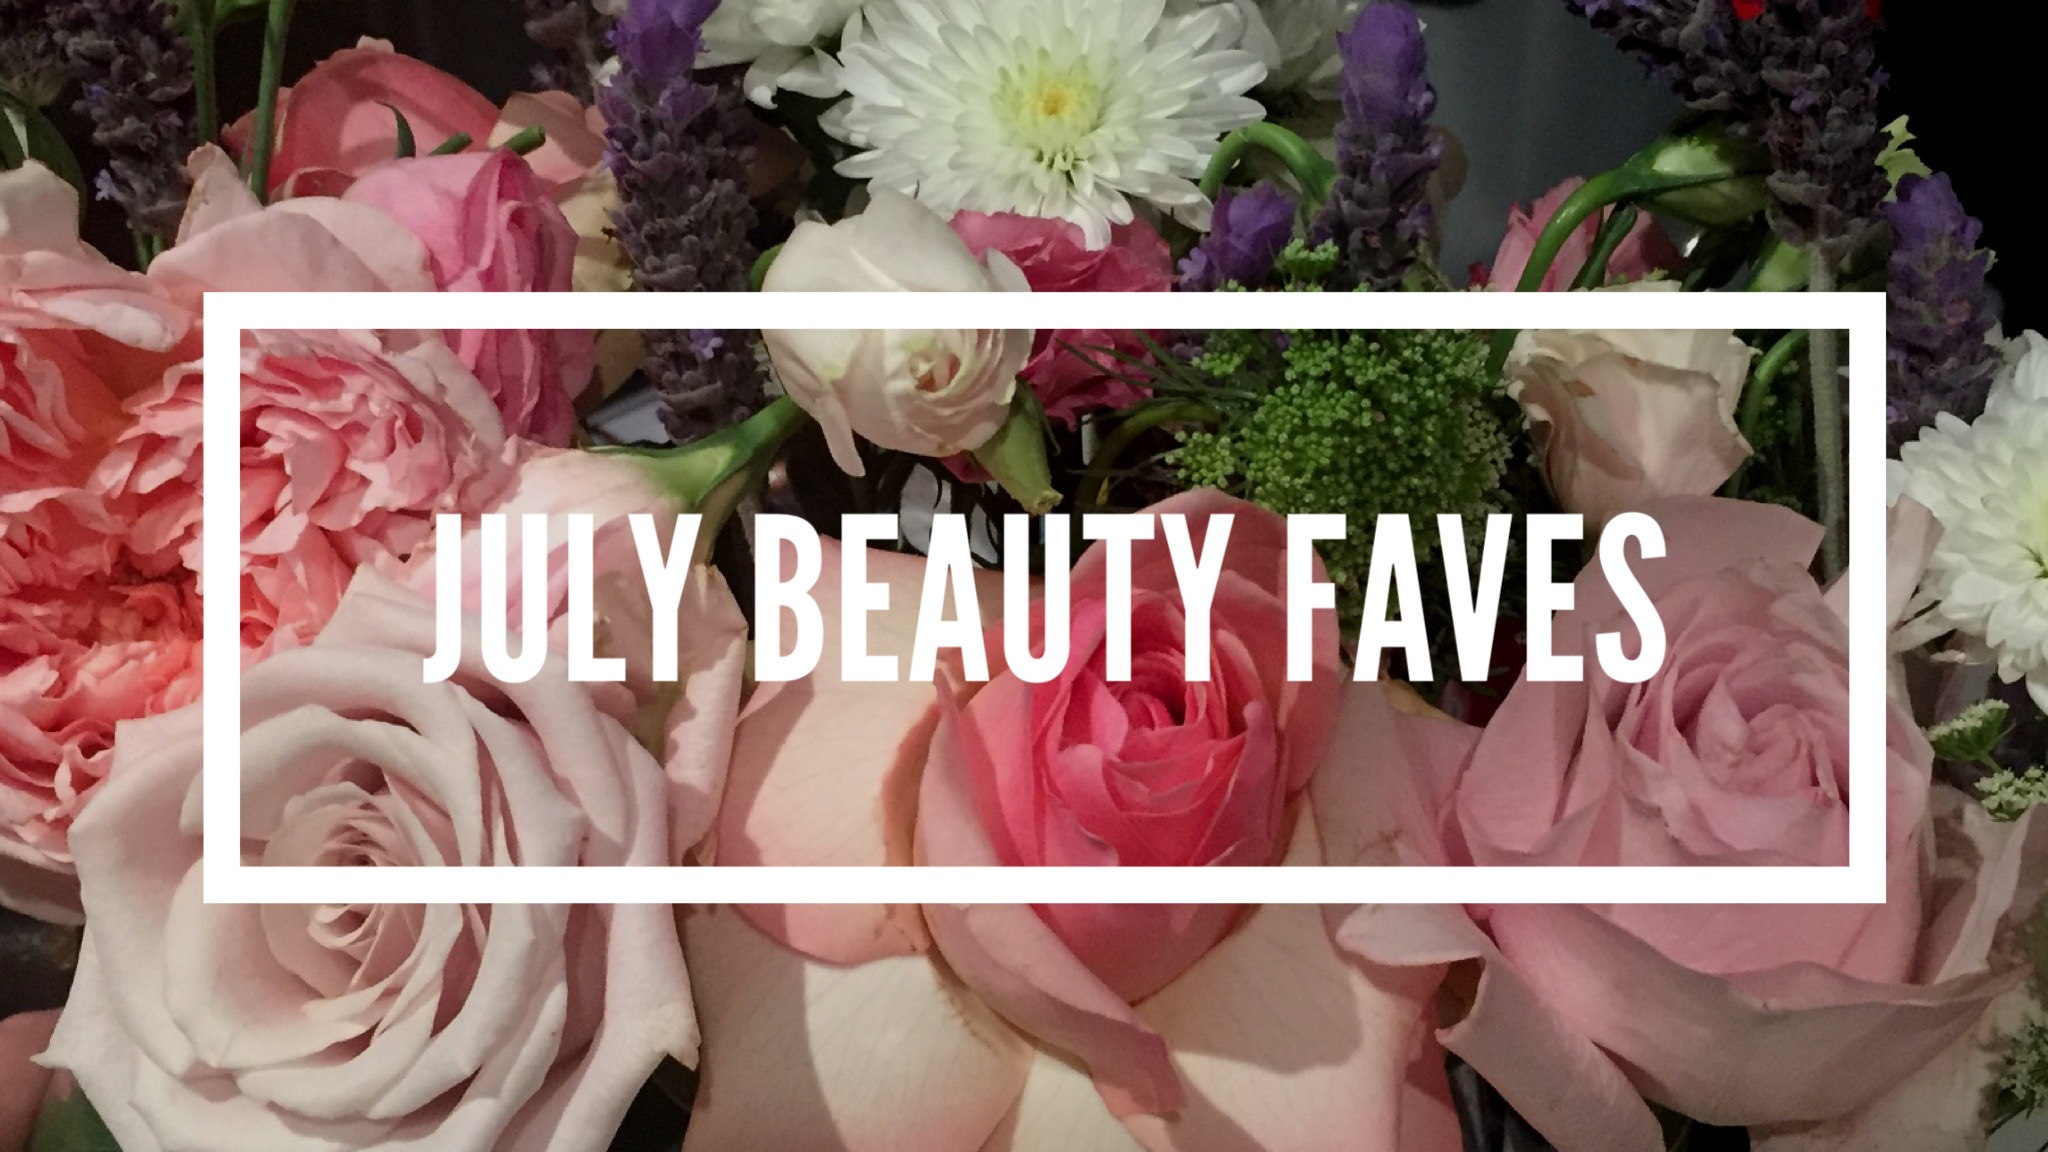 JULY BEAUTY FAVES